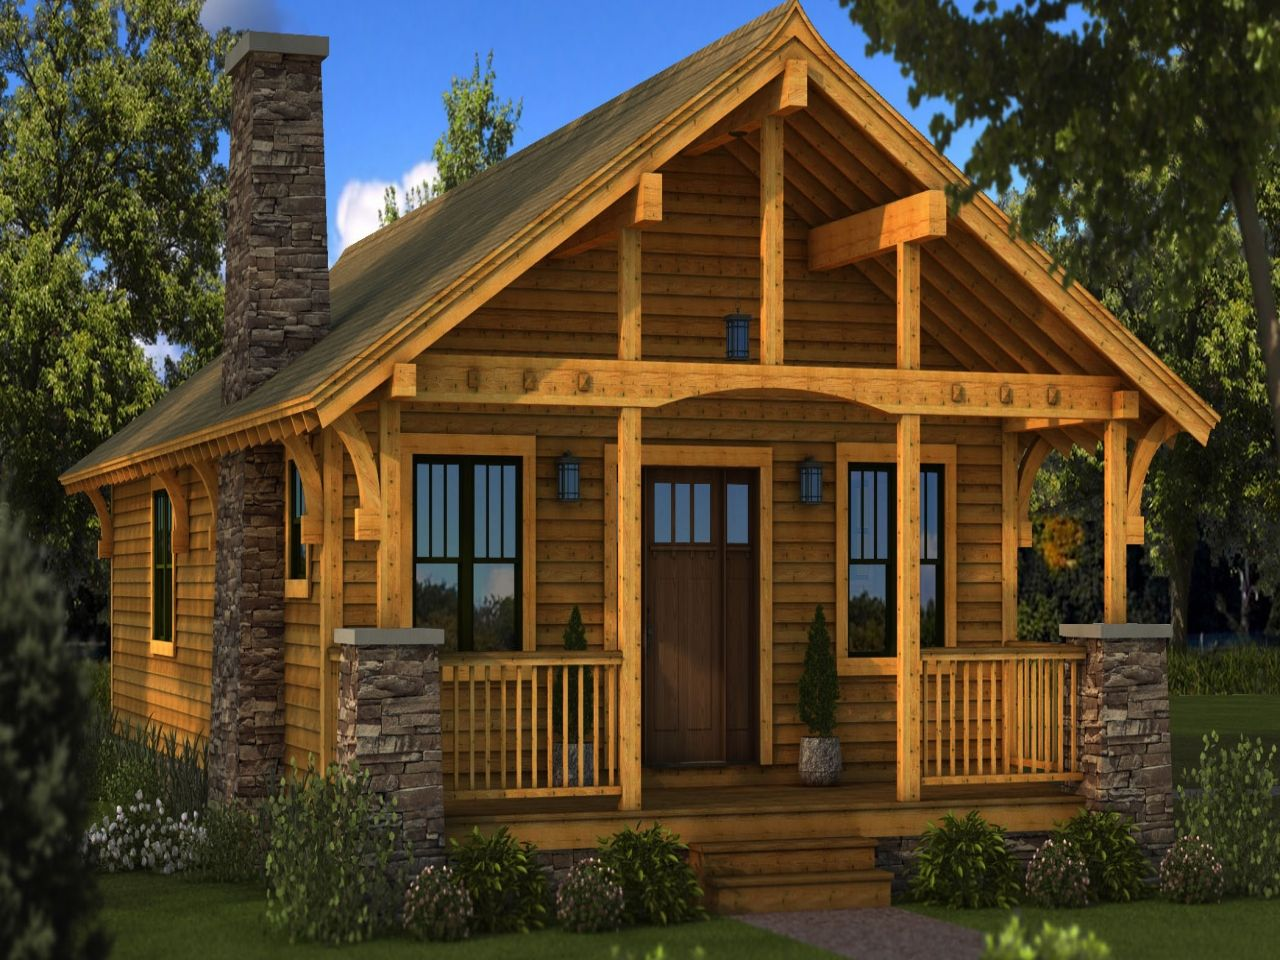 Small Log Cabin Homes Plans One Story Cabin Plans Mexzhouse Com Cabin Kit Homes Log Cabin Floor Plans Log Cabin Plans